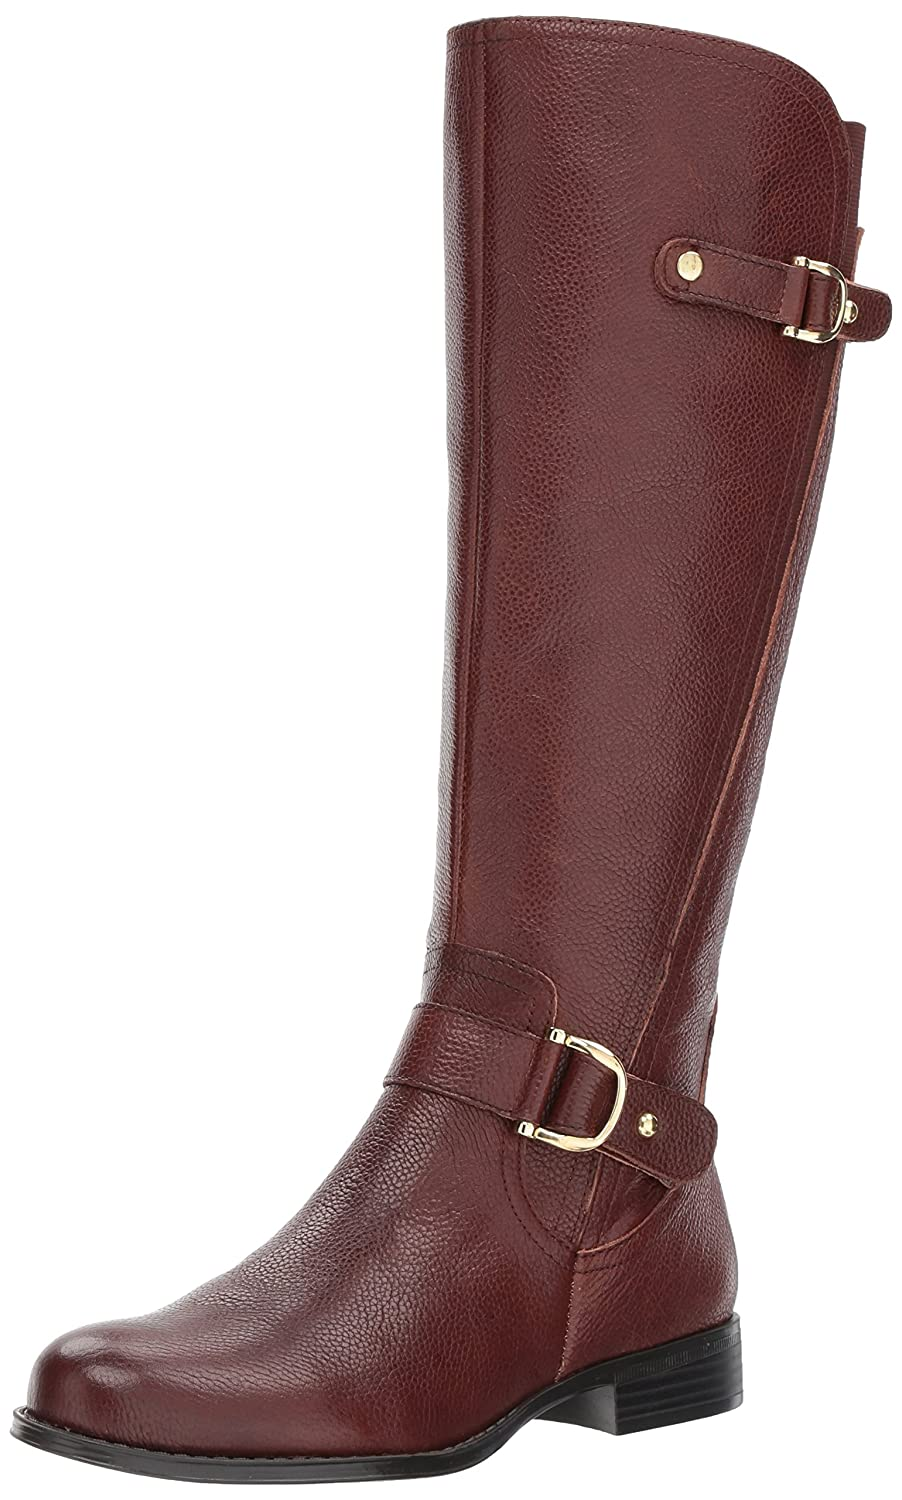 Naturalizer Women's Jenelle Riding Boot B0714FTZ85 9 2W US|Brown